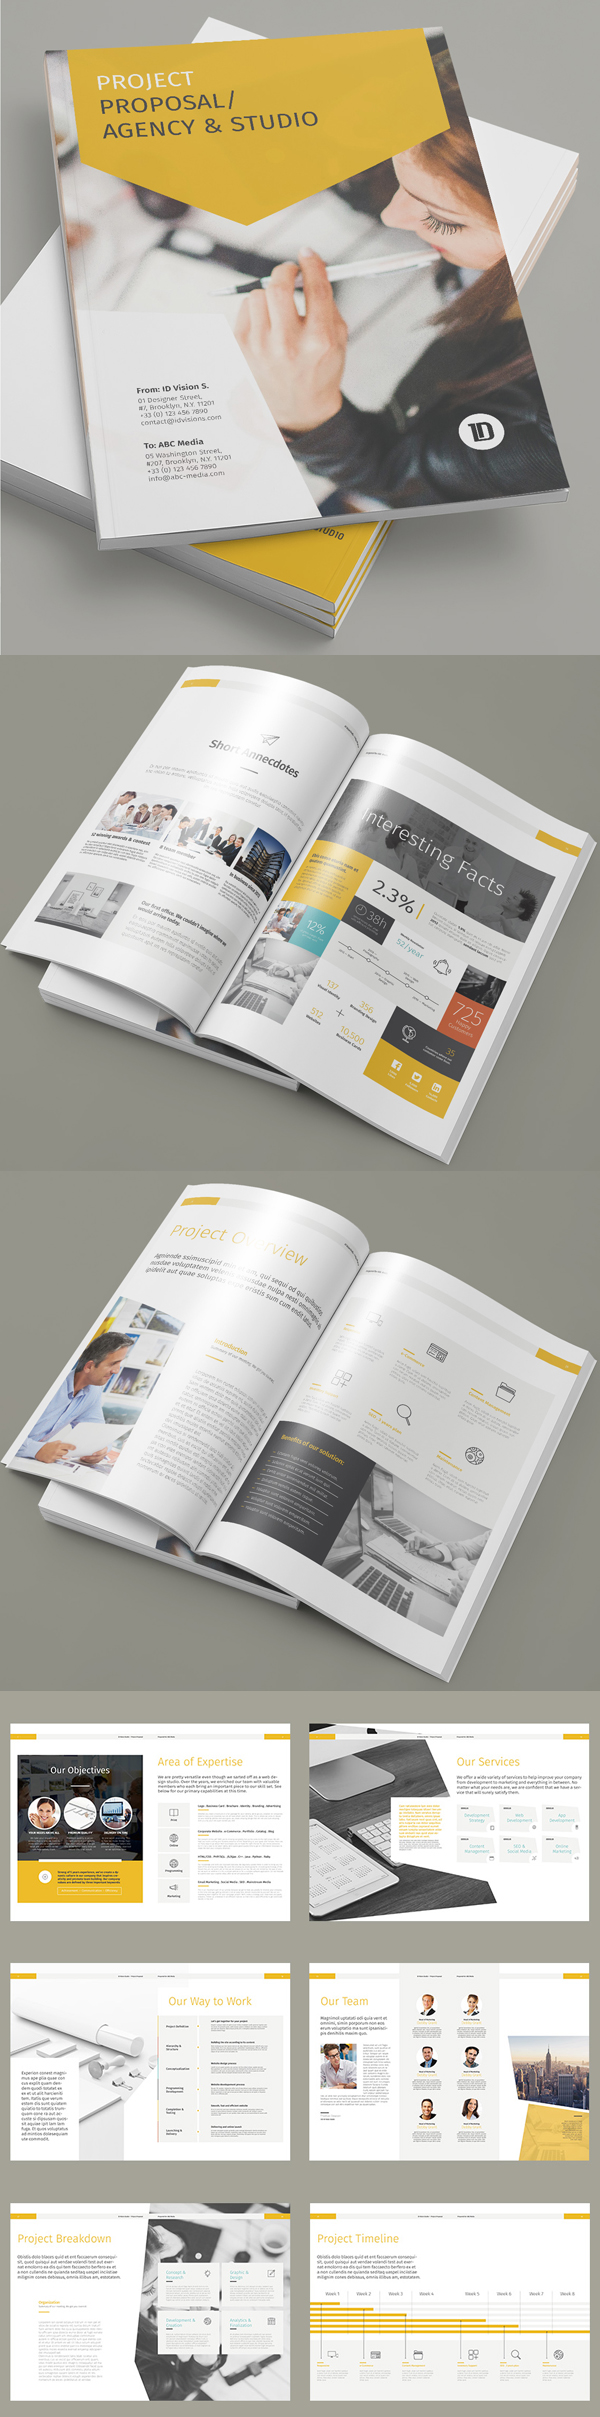 Project Proposal Brochure Template